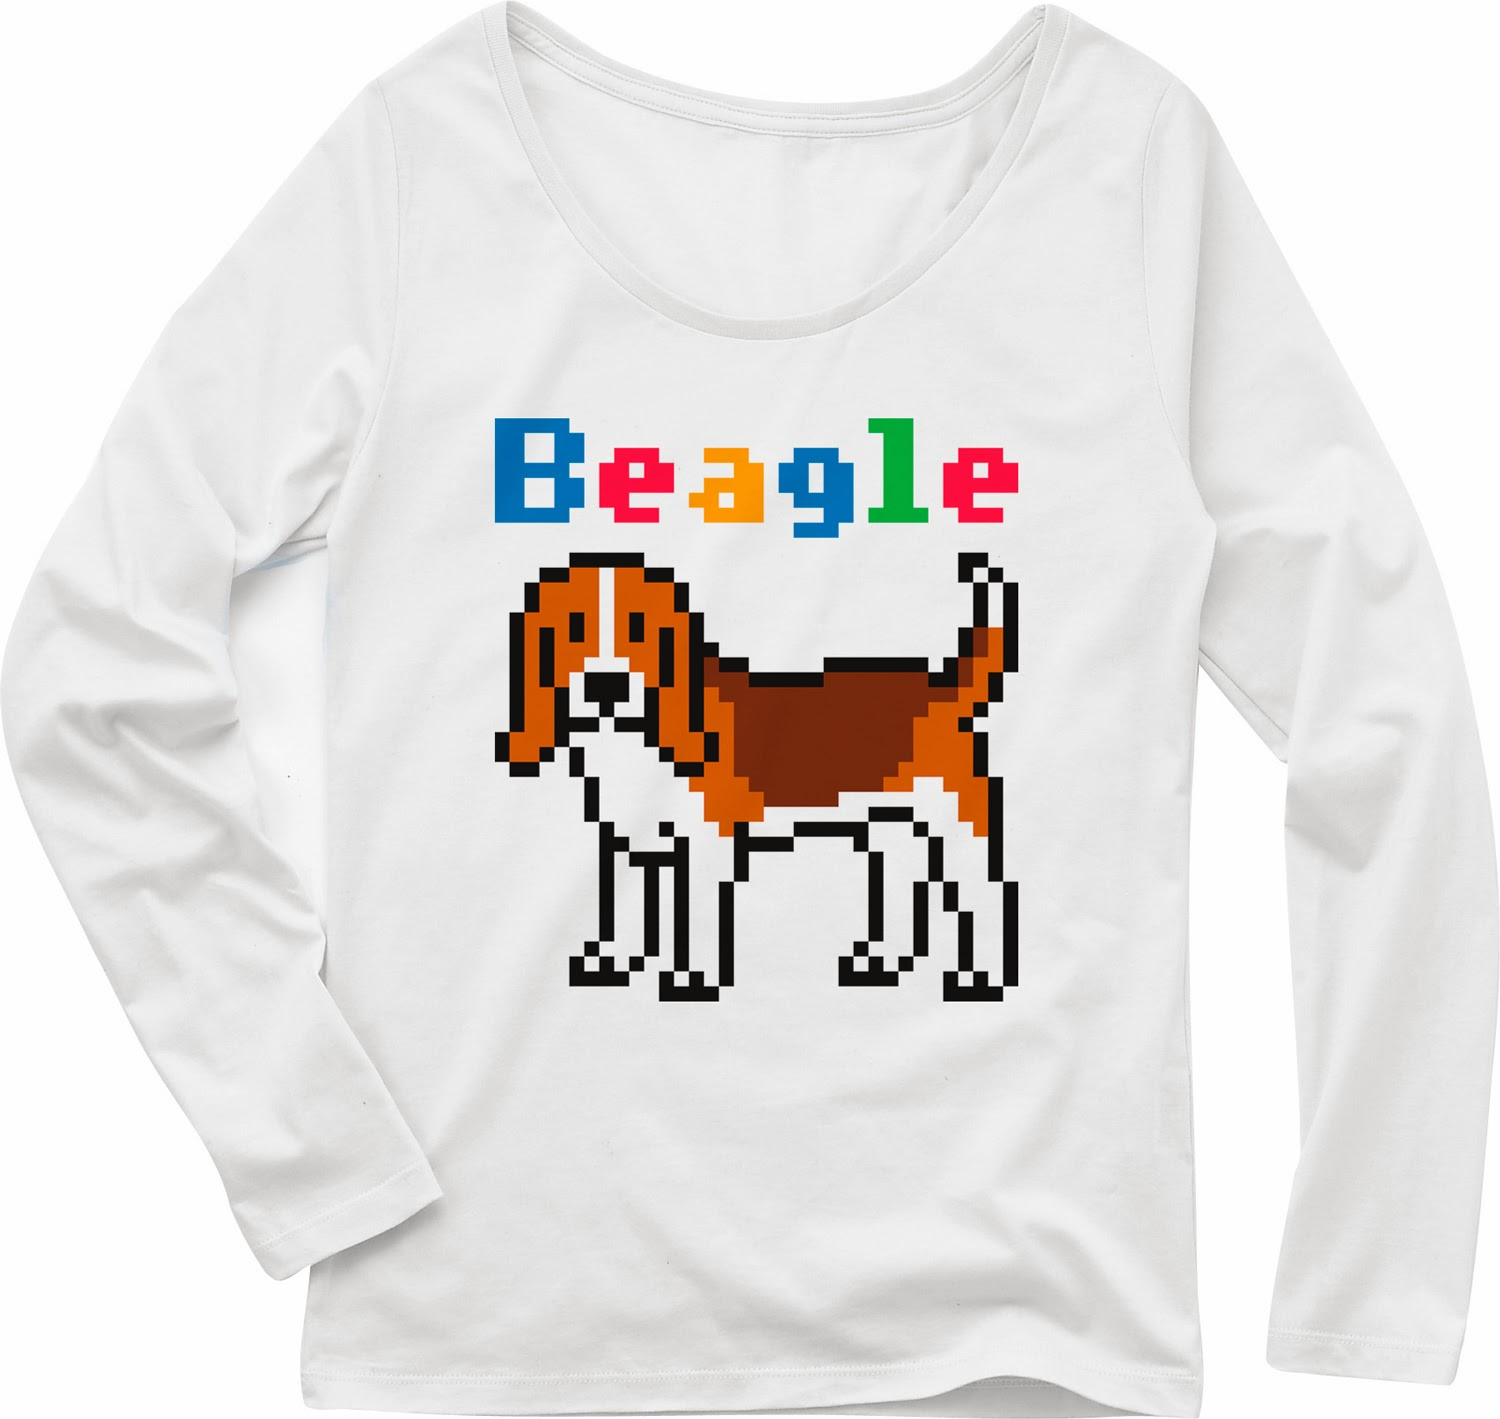 Pixel Party Boy「Beagle犬索」[Girls Boat-neck LongTee] ボートネック・ロングスリーブTシャツ 4.3oz | T-SHIRT COUNCIL